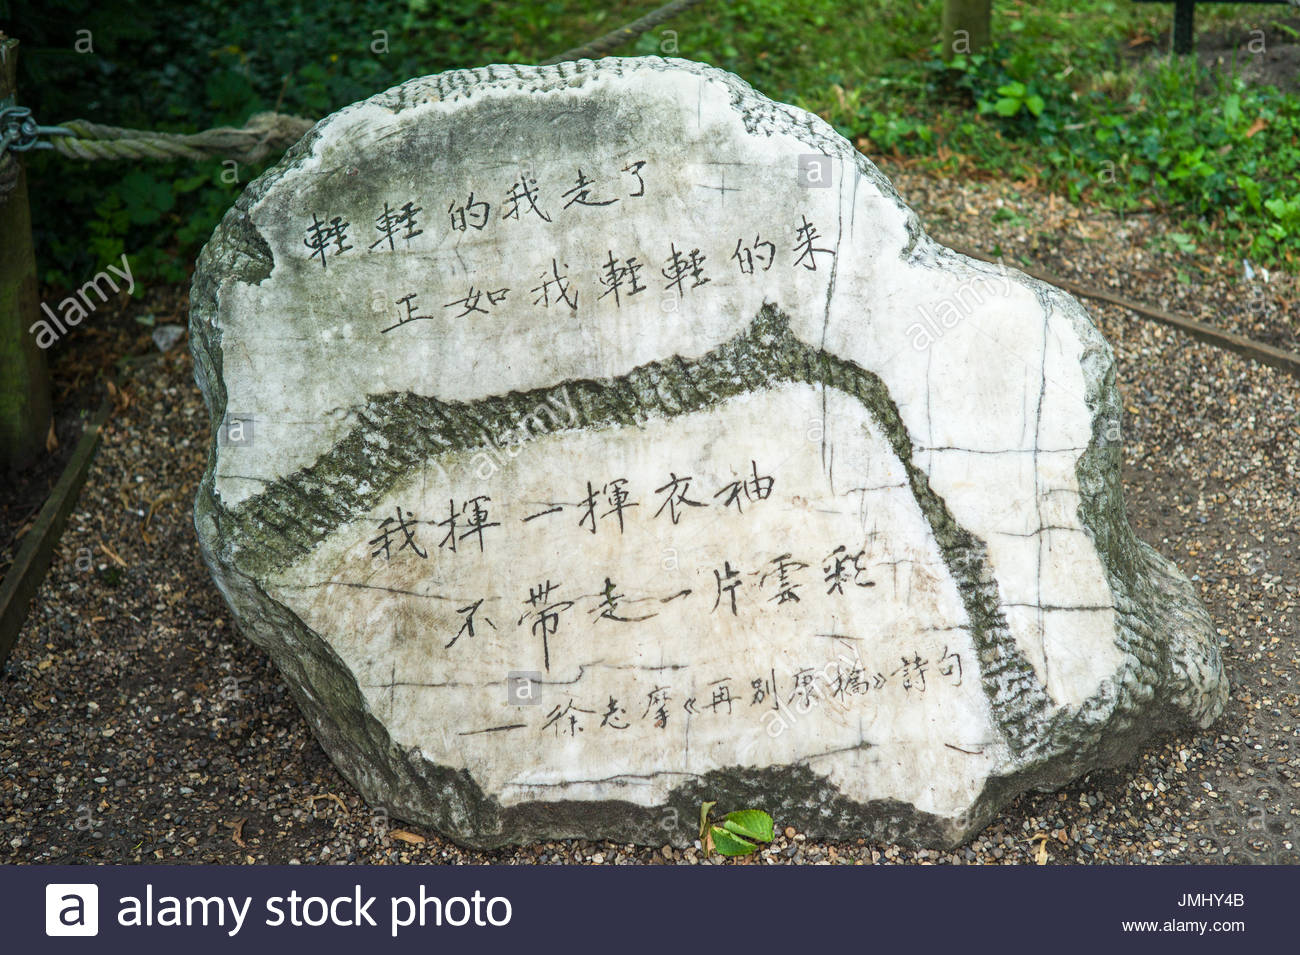 Xu Zhimo poema - Monumento a la primera y la última línea del poema de despedida a Cambridge en el recinto de Kings College, Universidad de Cambridge. Imagen De Stock